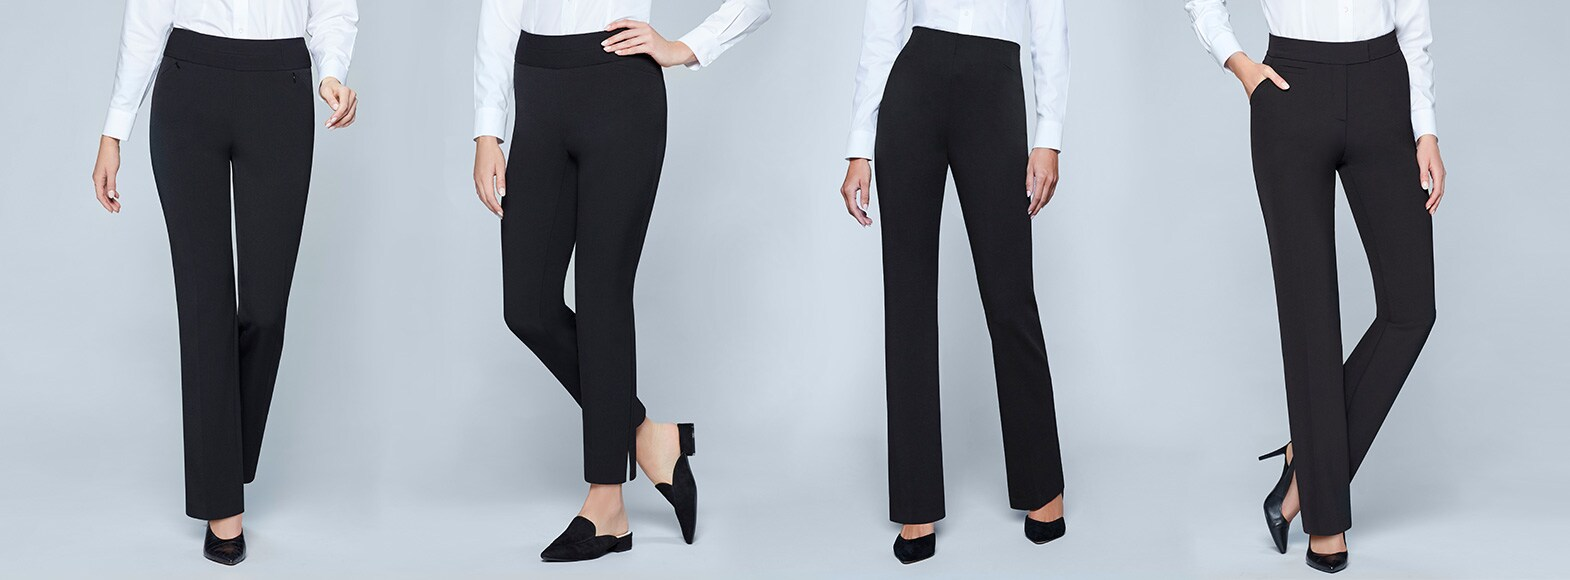 Shop women's Investment pants